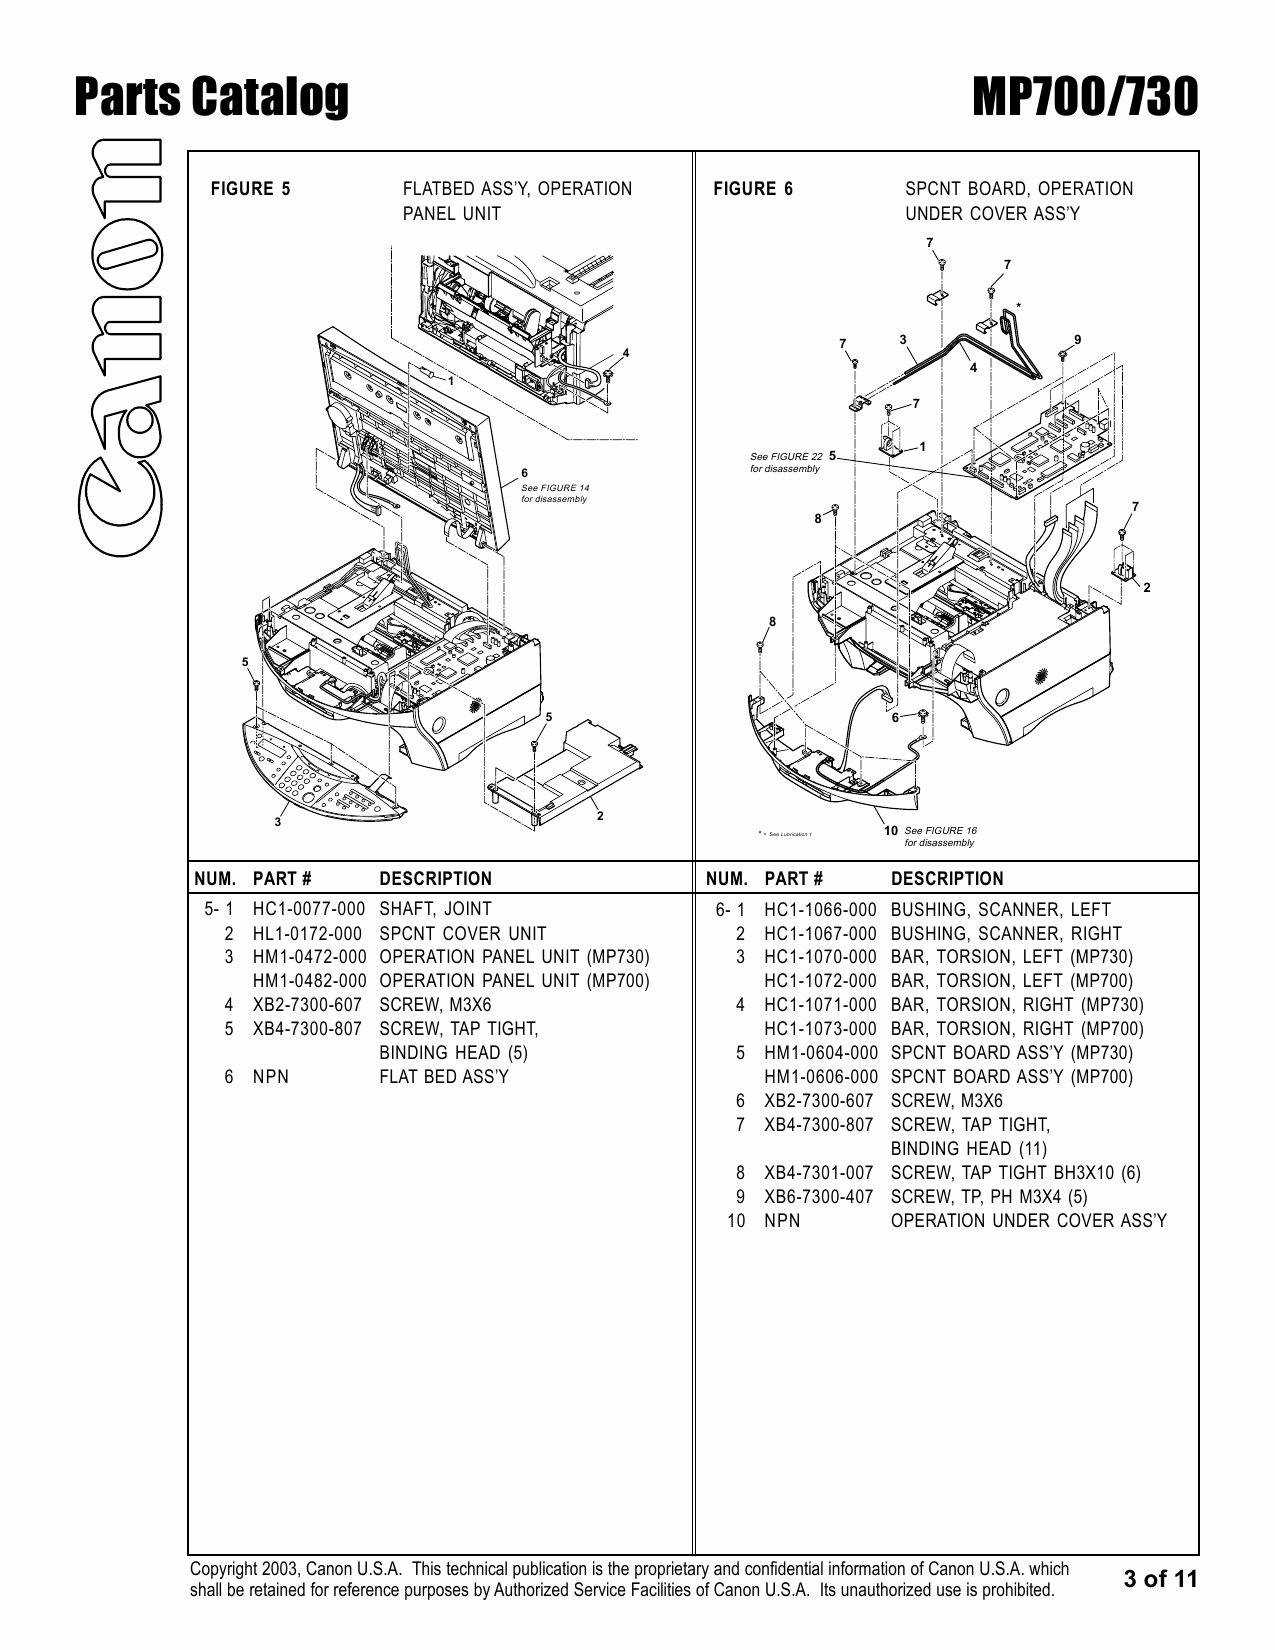 Canon PIXMA MP700 MP730 Parts Catalog Manual-4